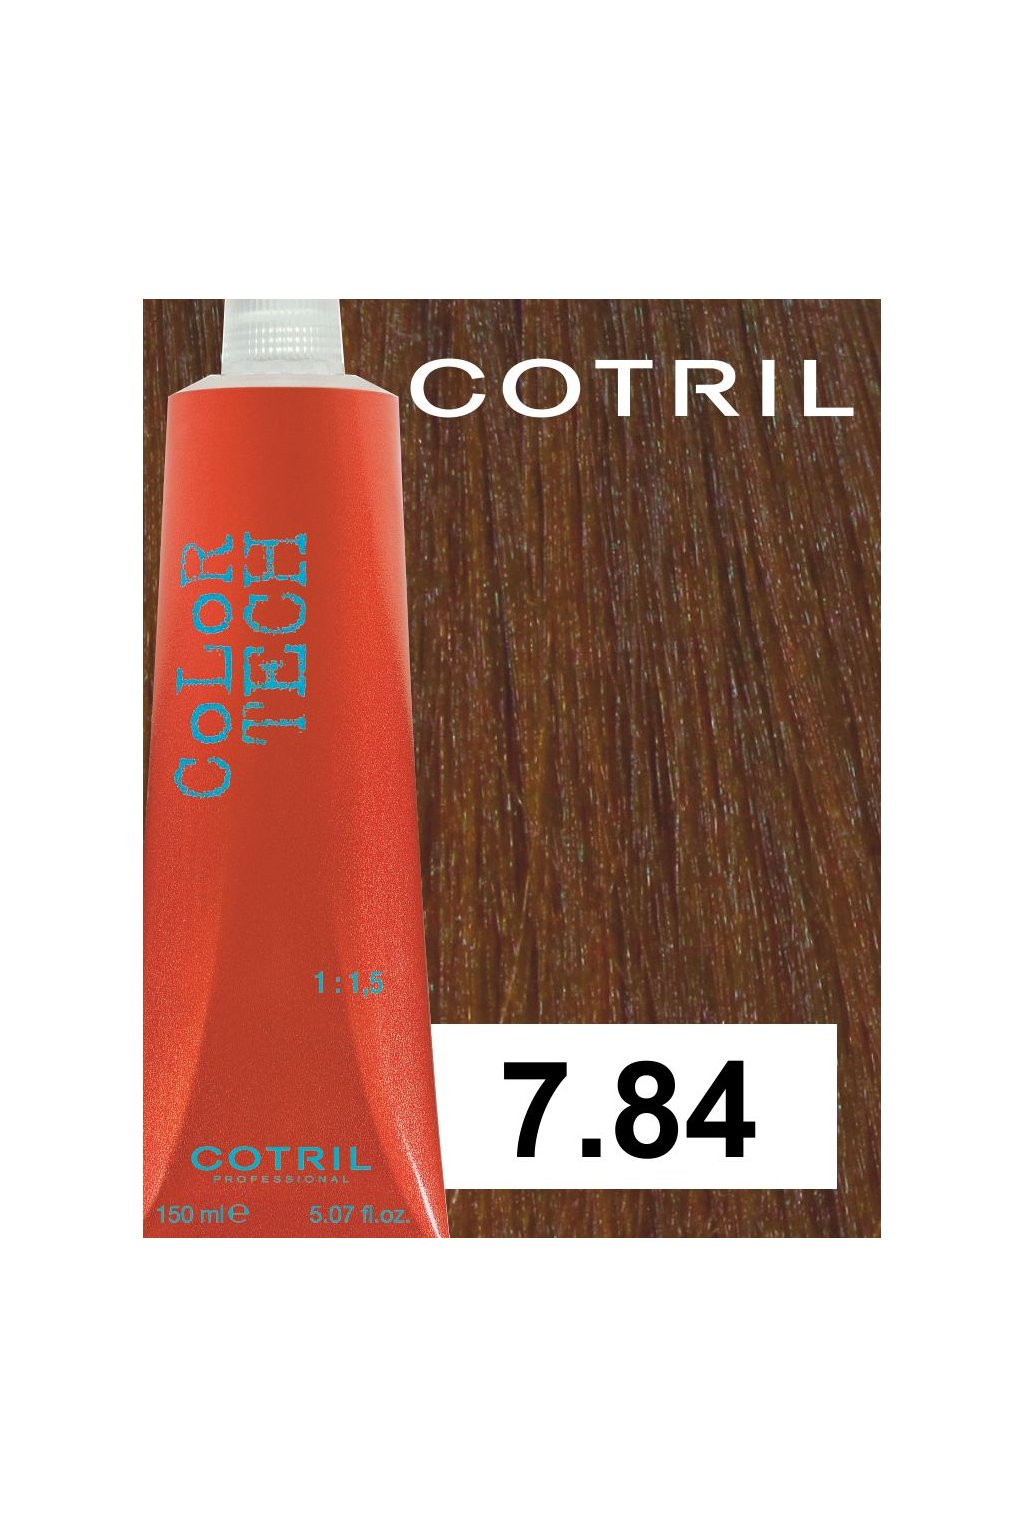 7 84 ct cotril